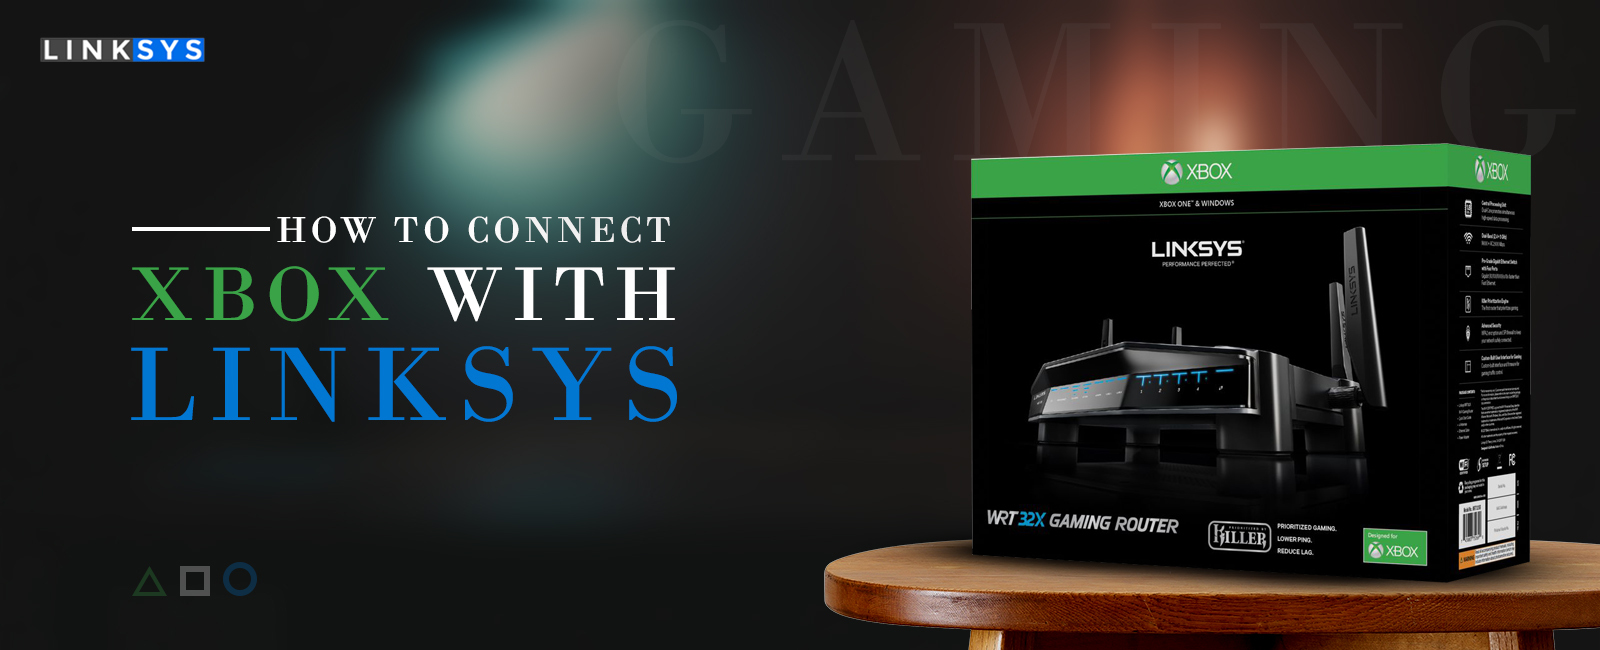 Connect Xbox with Linksys